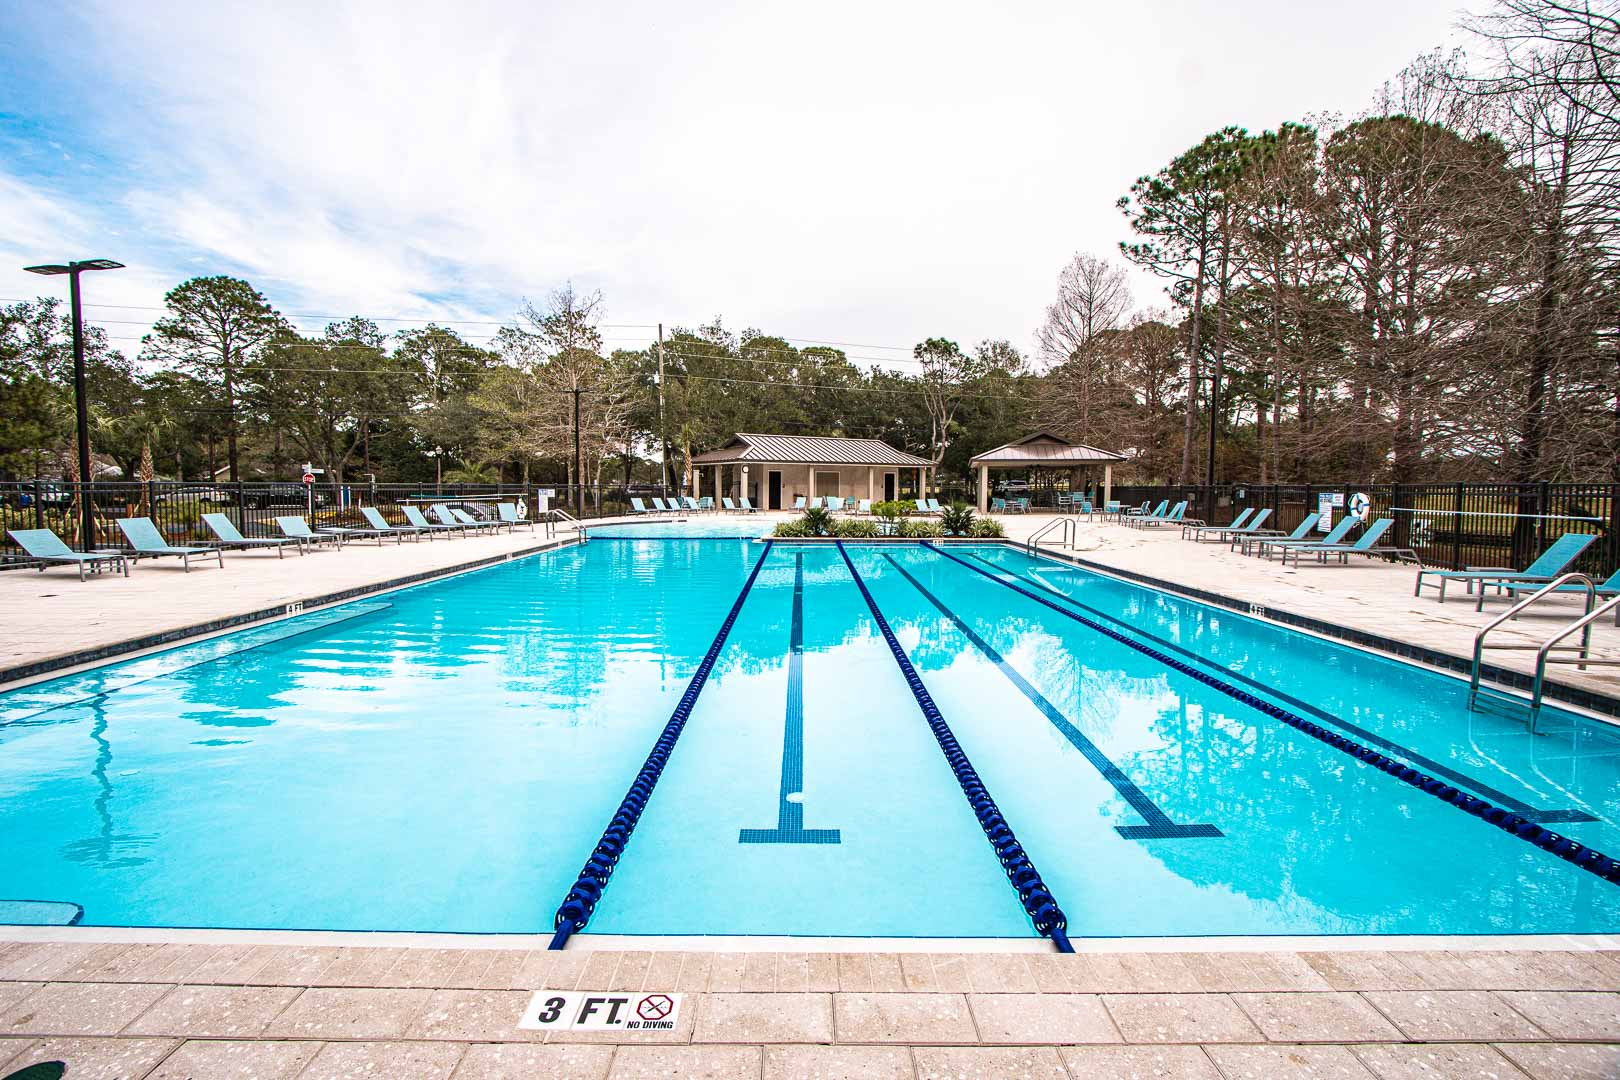 A Spacious outdoor swimming pool at VRI's Bay Club of Sandestin in Florida.